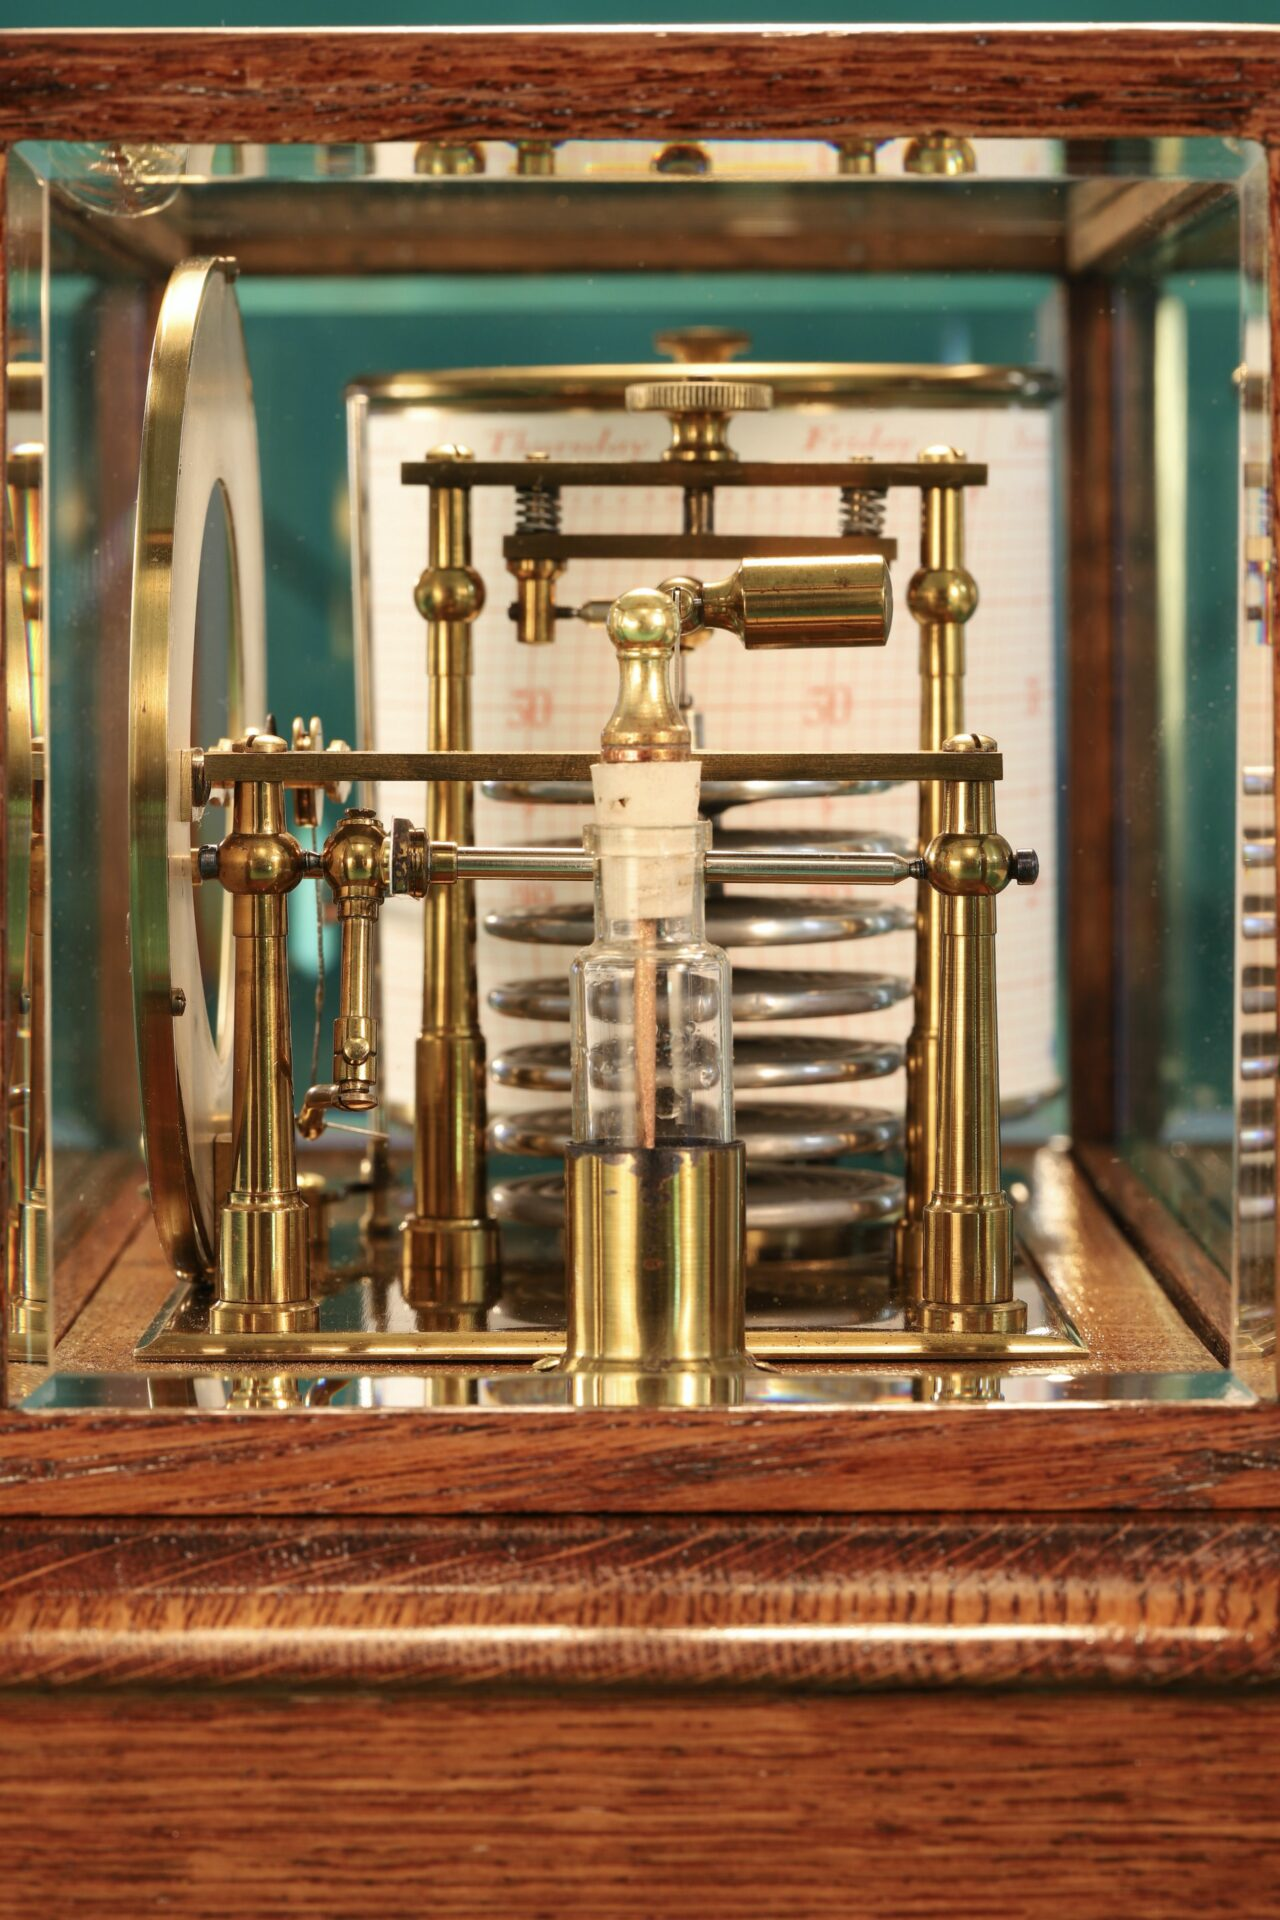 Side view of Negretti & Zambra Barograph with Dial No 455 c1918 taken from right